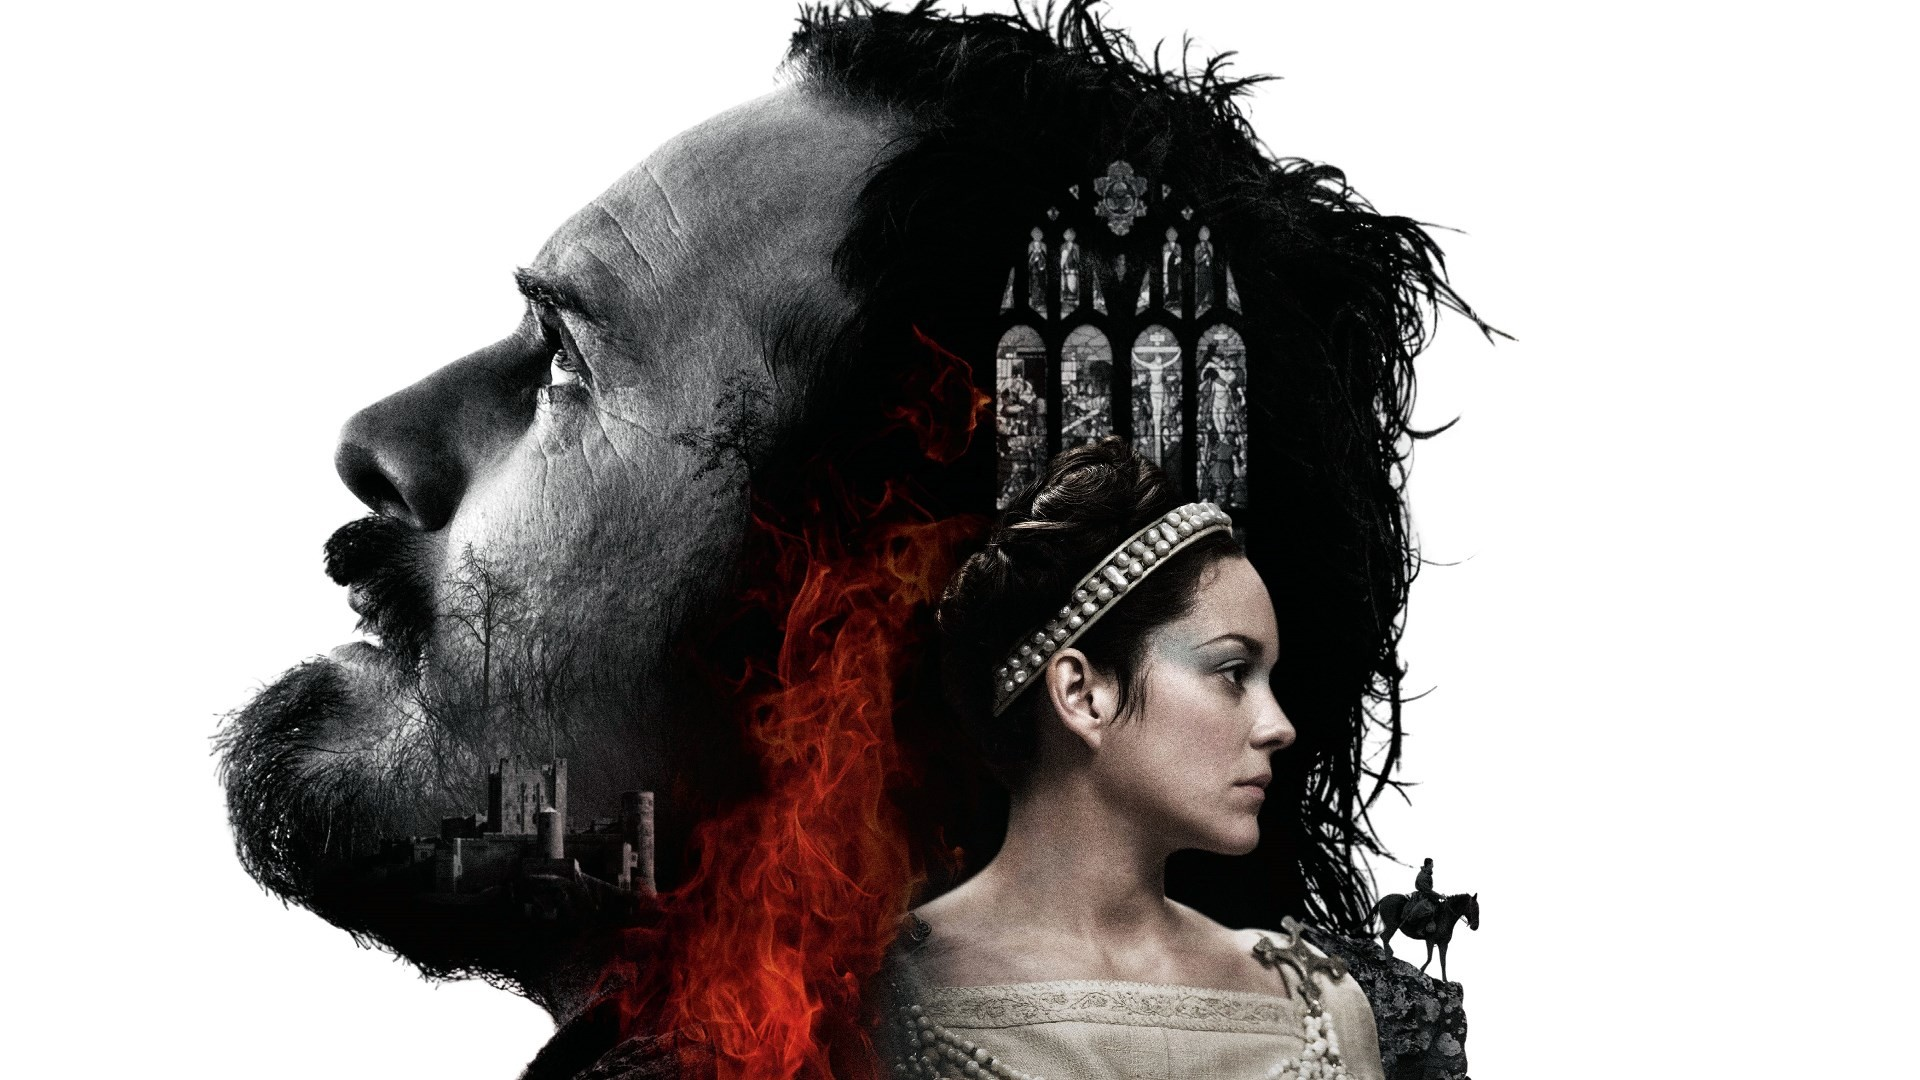 macbeth historical context Because macbeth had been written to please king james, shakespeare changed the historical context of the play and made banquo, a noble subject, a sympathetic character banquo similar.